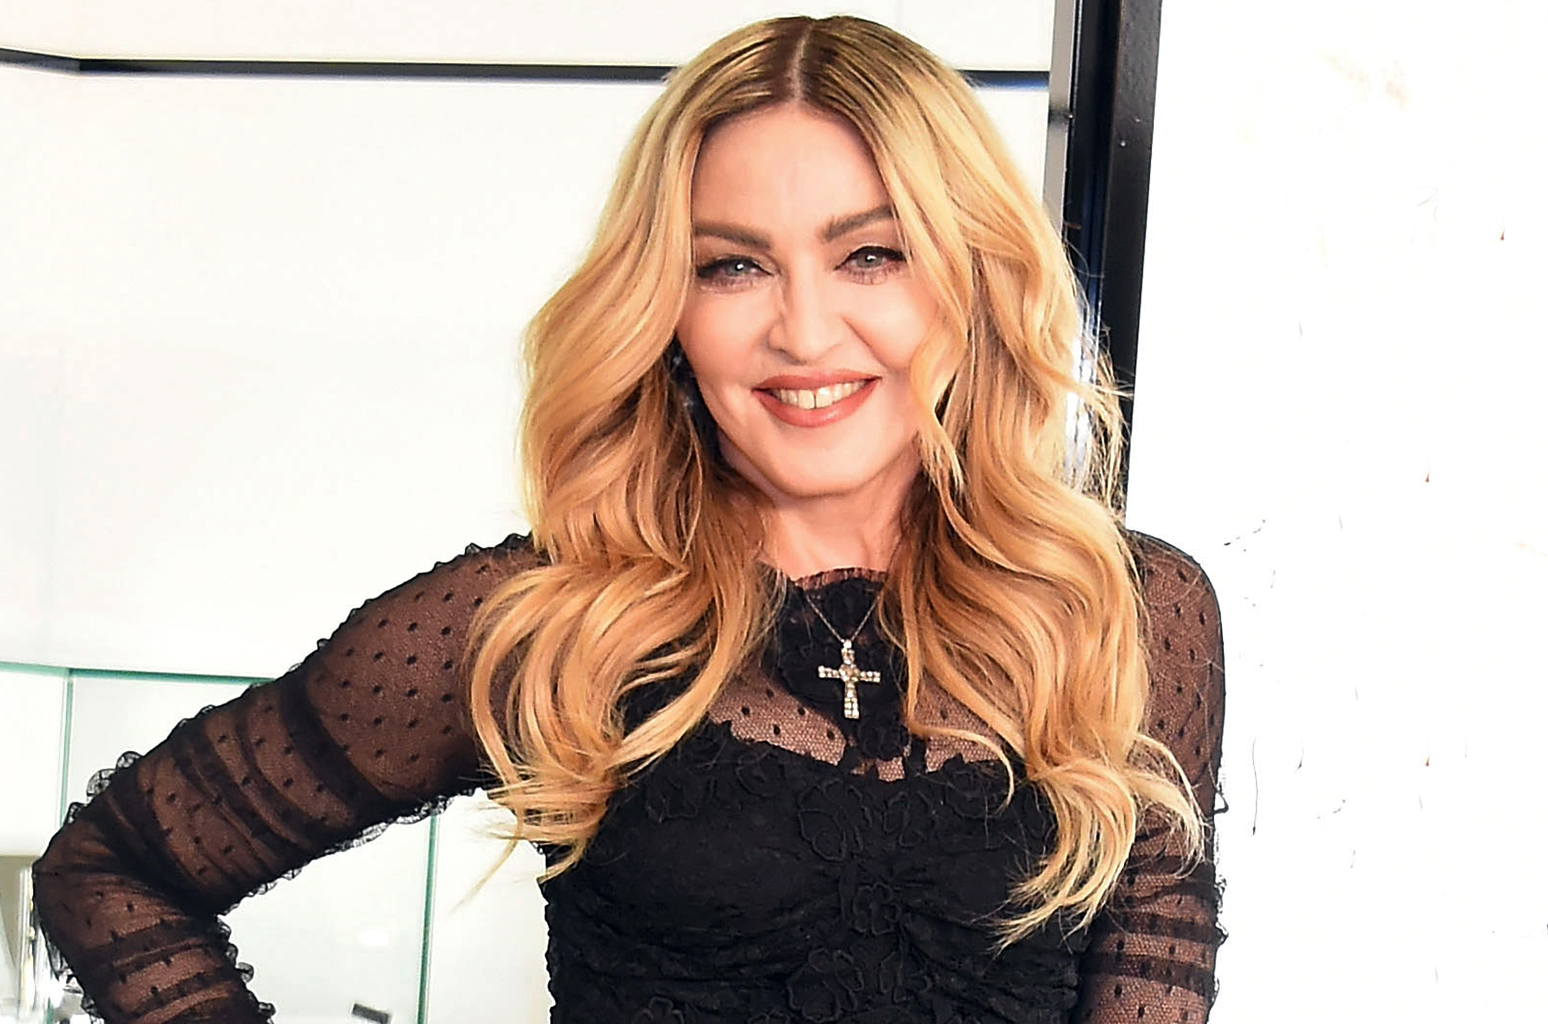 """TOKYO, JAPAN - FEBRUARY 15:  Madonna attends the marketing event for """"MDNA SKIN"""" on February 15, 2016 in Tokyo, Japan.  (picture by Jun Sato/WireImage)"""